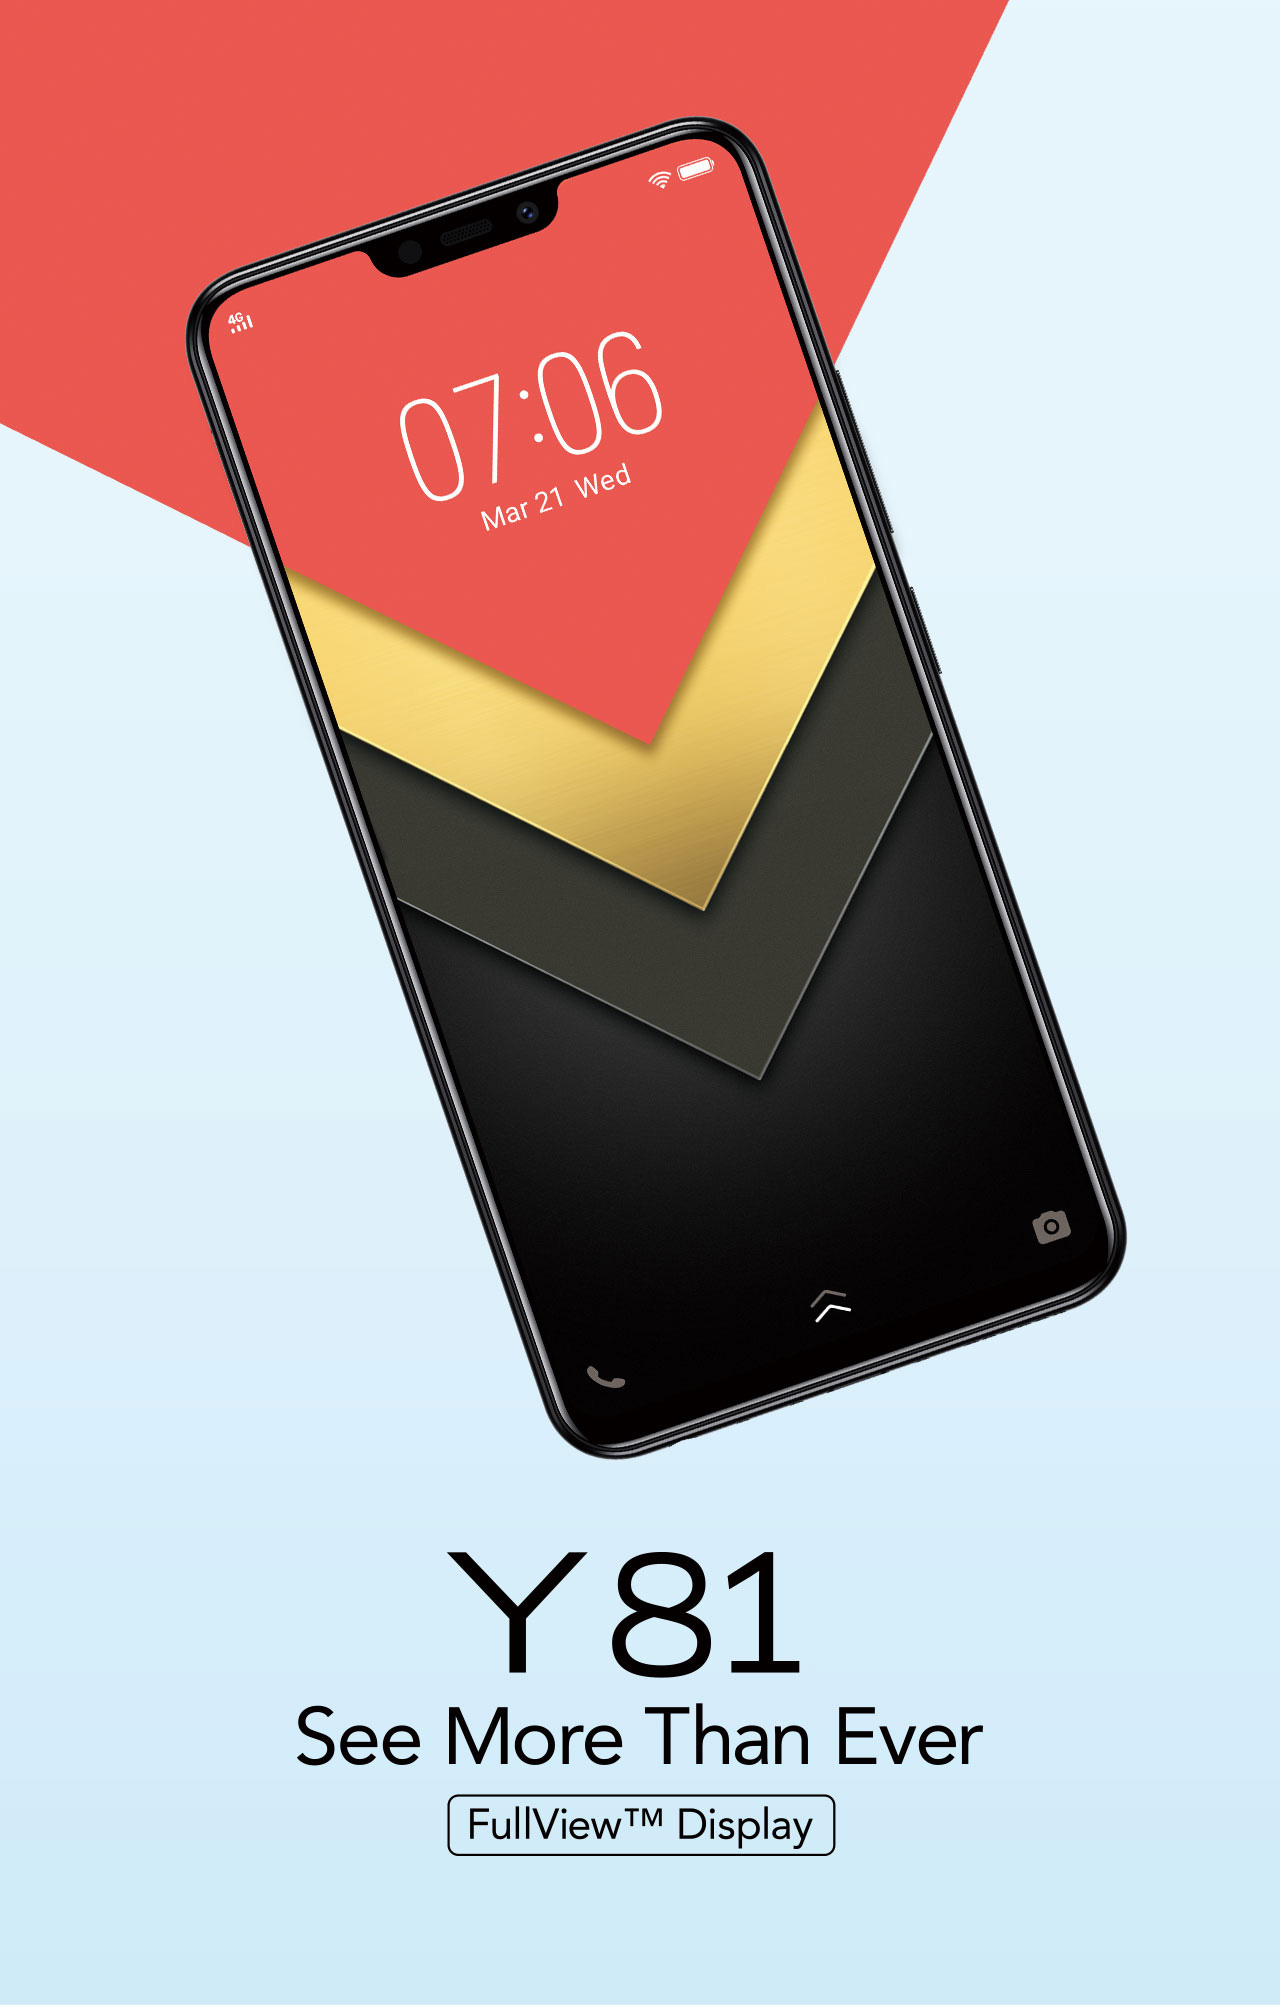 Vivo Y81 Vivo Indonesia